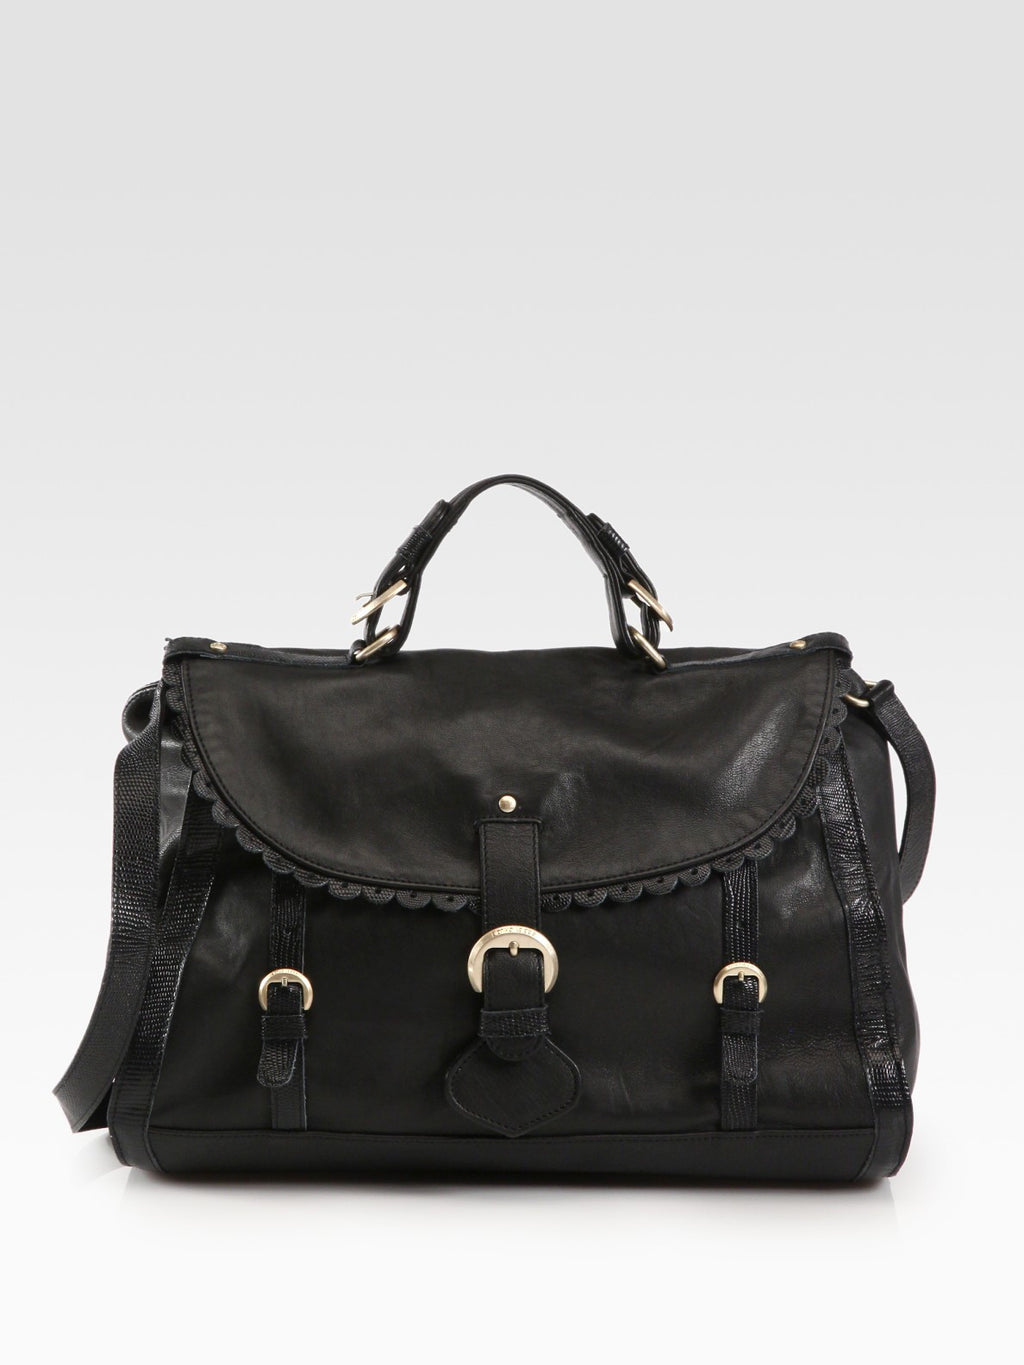 See By Chloe Black Poya Satchel - Joyce's Closet  - 4